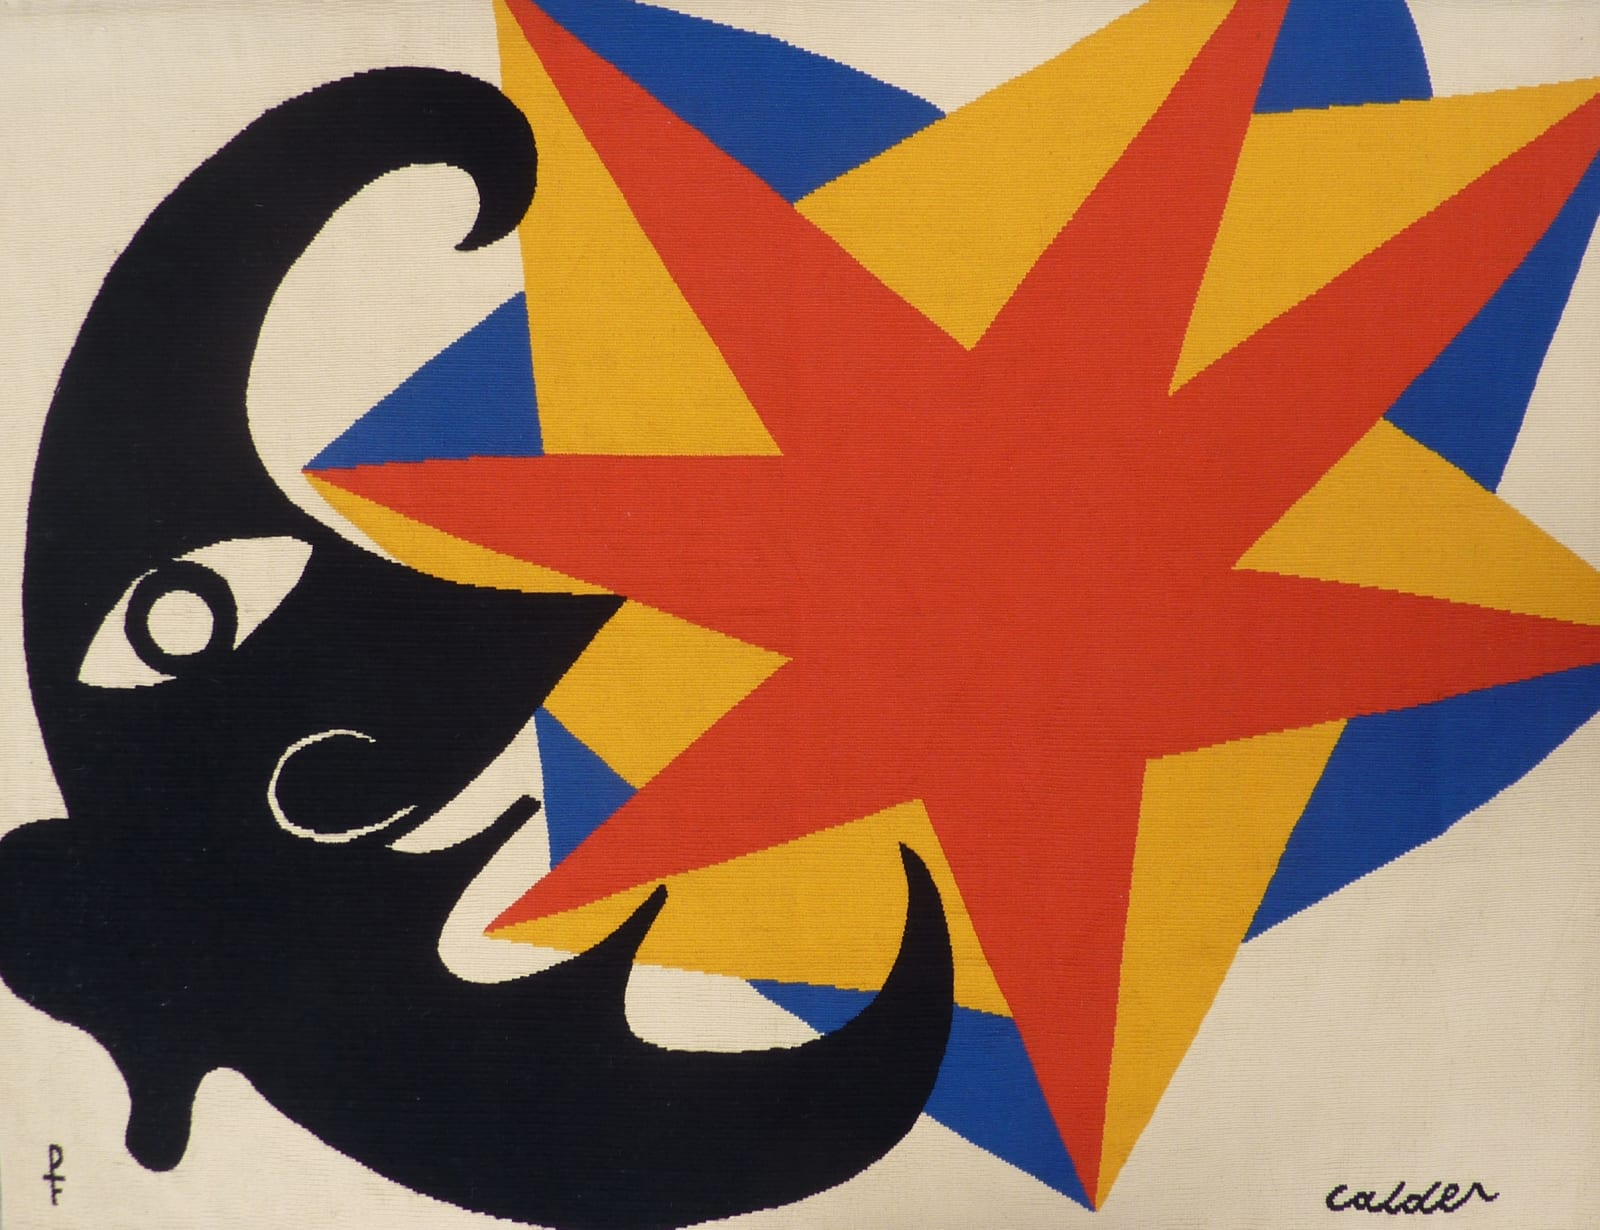 Alexander CALDER (1898 – 1976) Le Profil qui Disparait, c.1970 Tapestry made for the artist by Pinton Aubusson in an edition of 6 plus 2 artists proofs 57 1/8 x 43 3/8 inches / 145 x 110 cm Artists Proof